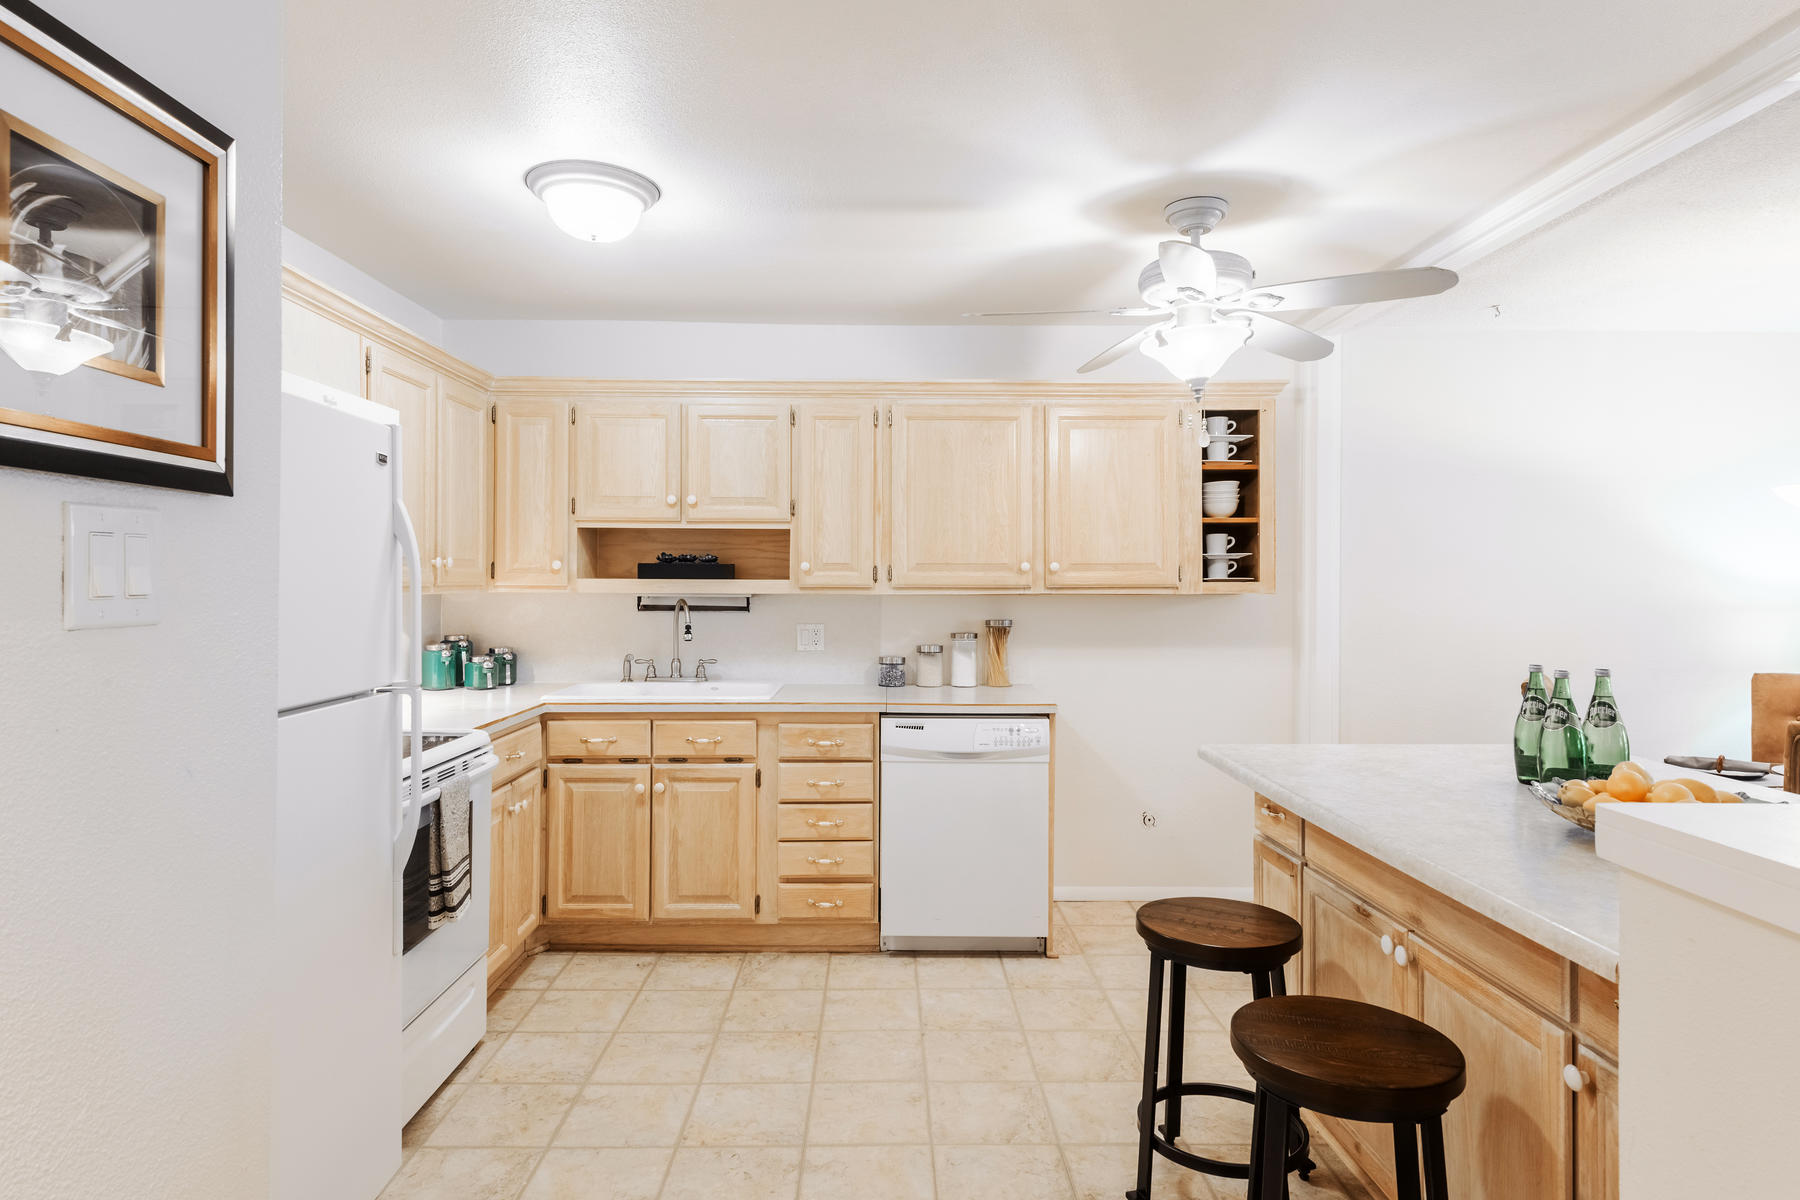 Additional photo for property listing at Tastefully Updated Condo 720 S Clinton St #3B Denver, Colorado 80247 United States